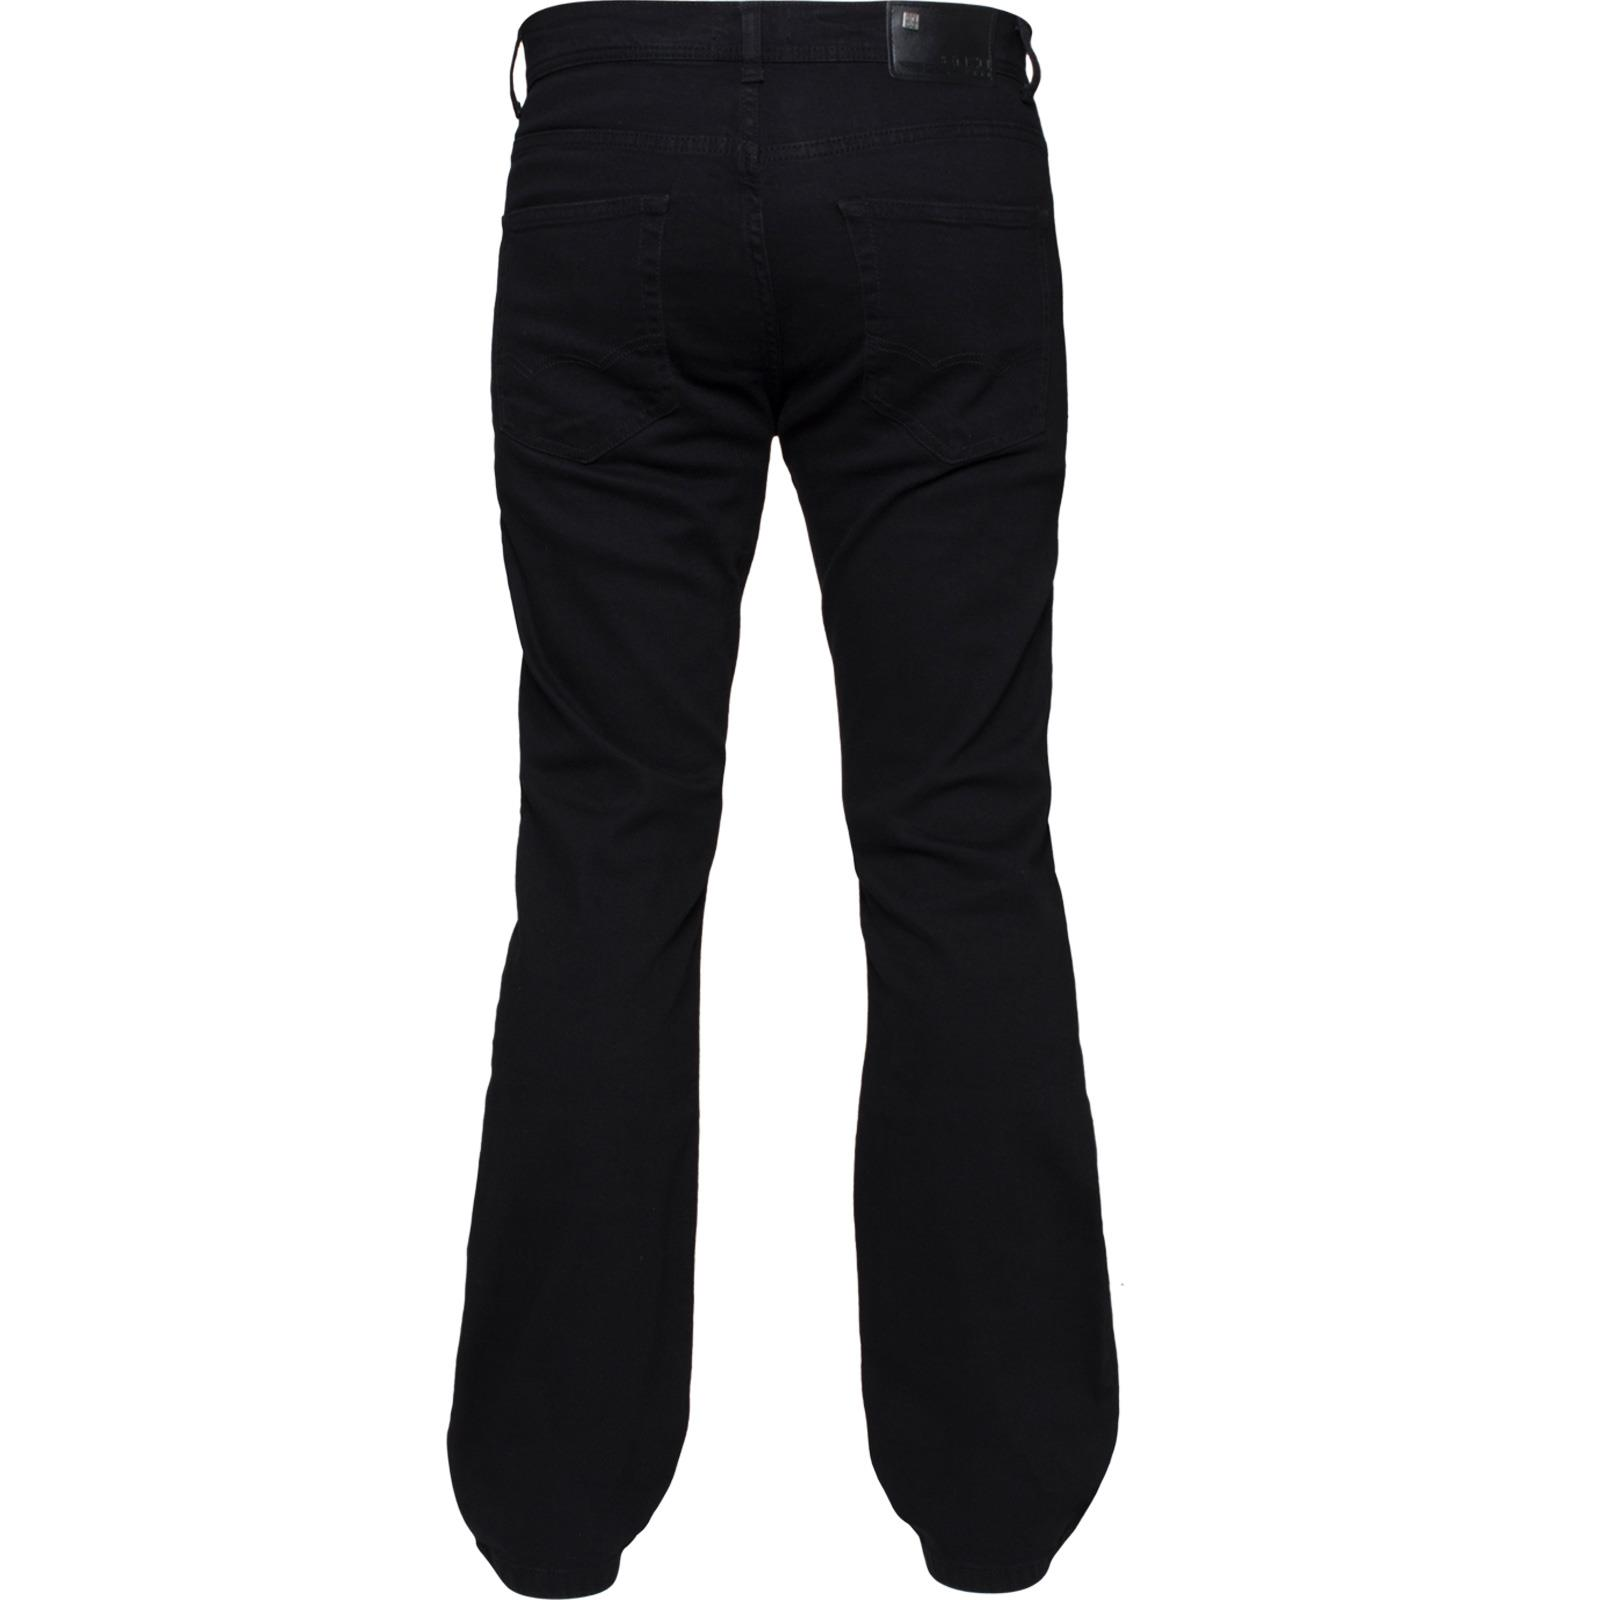 Enzo-Mens-Jeans-Big-Tall-Leg-King-Size-Denim-Pants-Chino-Trousers-Waist-44-034-60-034 miniature 59